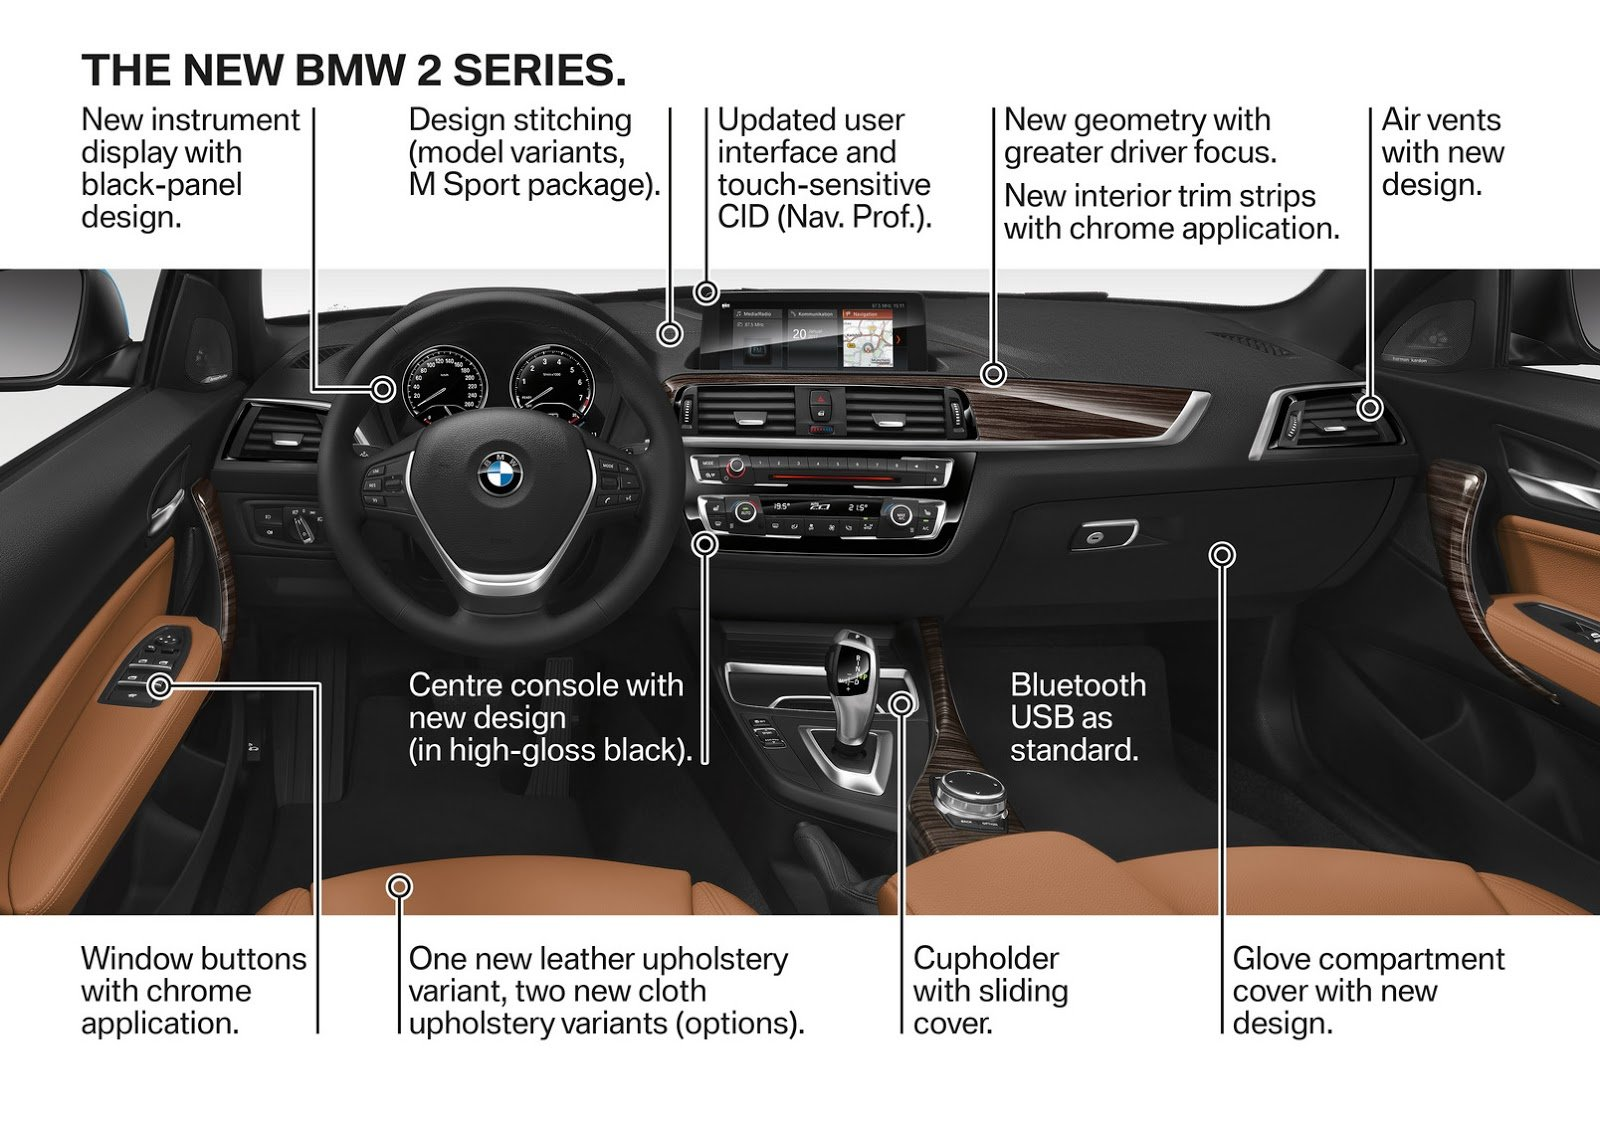 BMW Has Also Added A New Upholstery Options With One Leather Variant And Two Cloth Ones